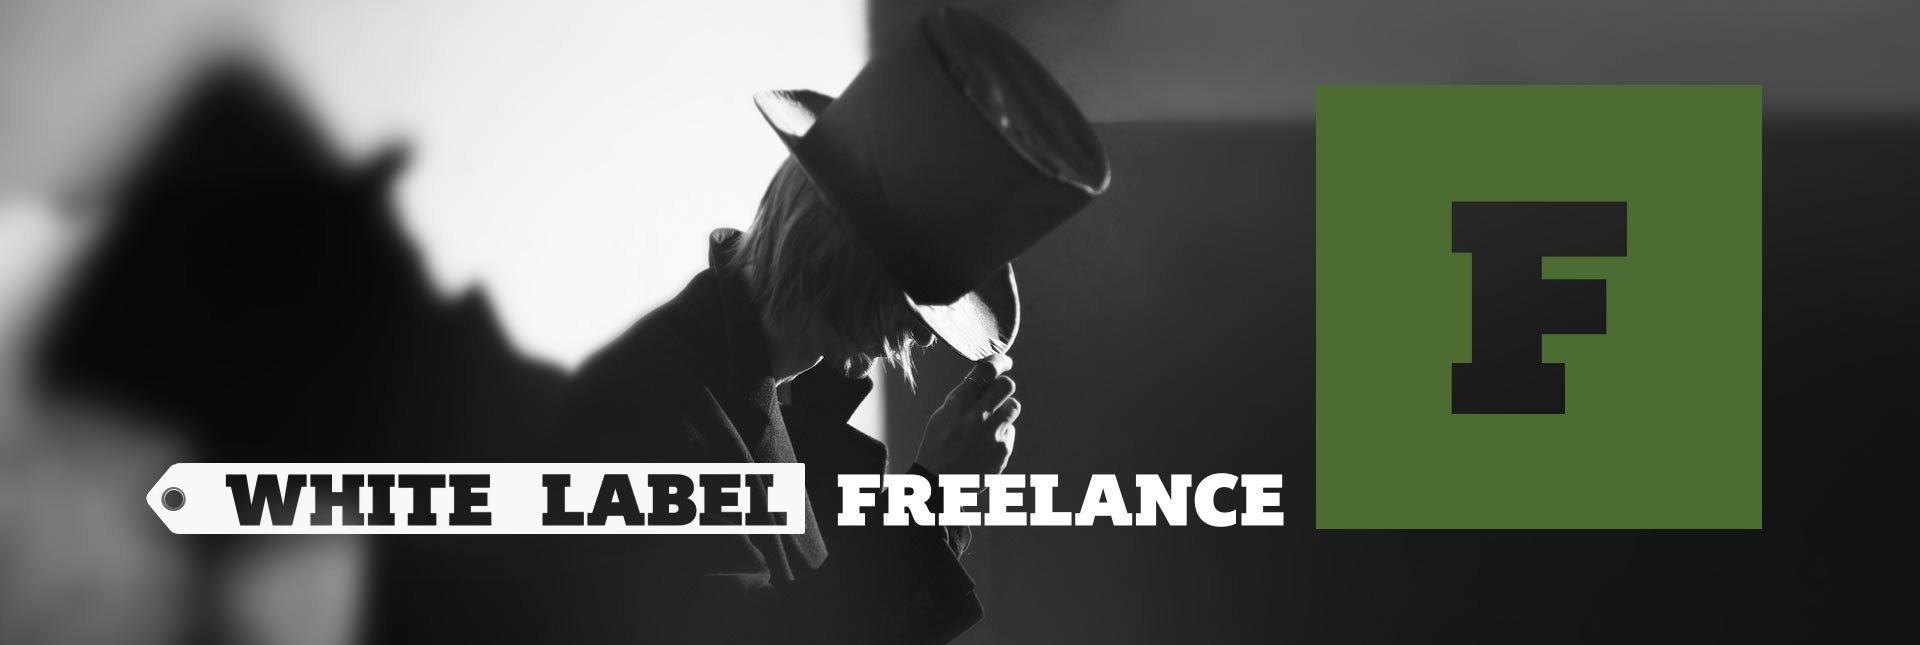 White Label Freelance Available